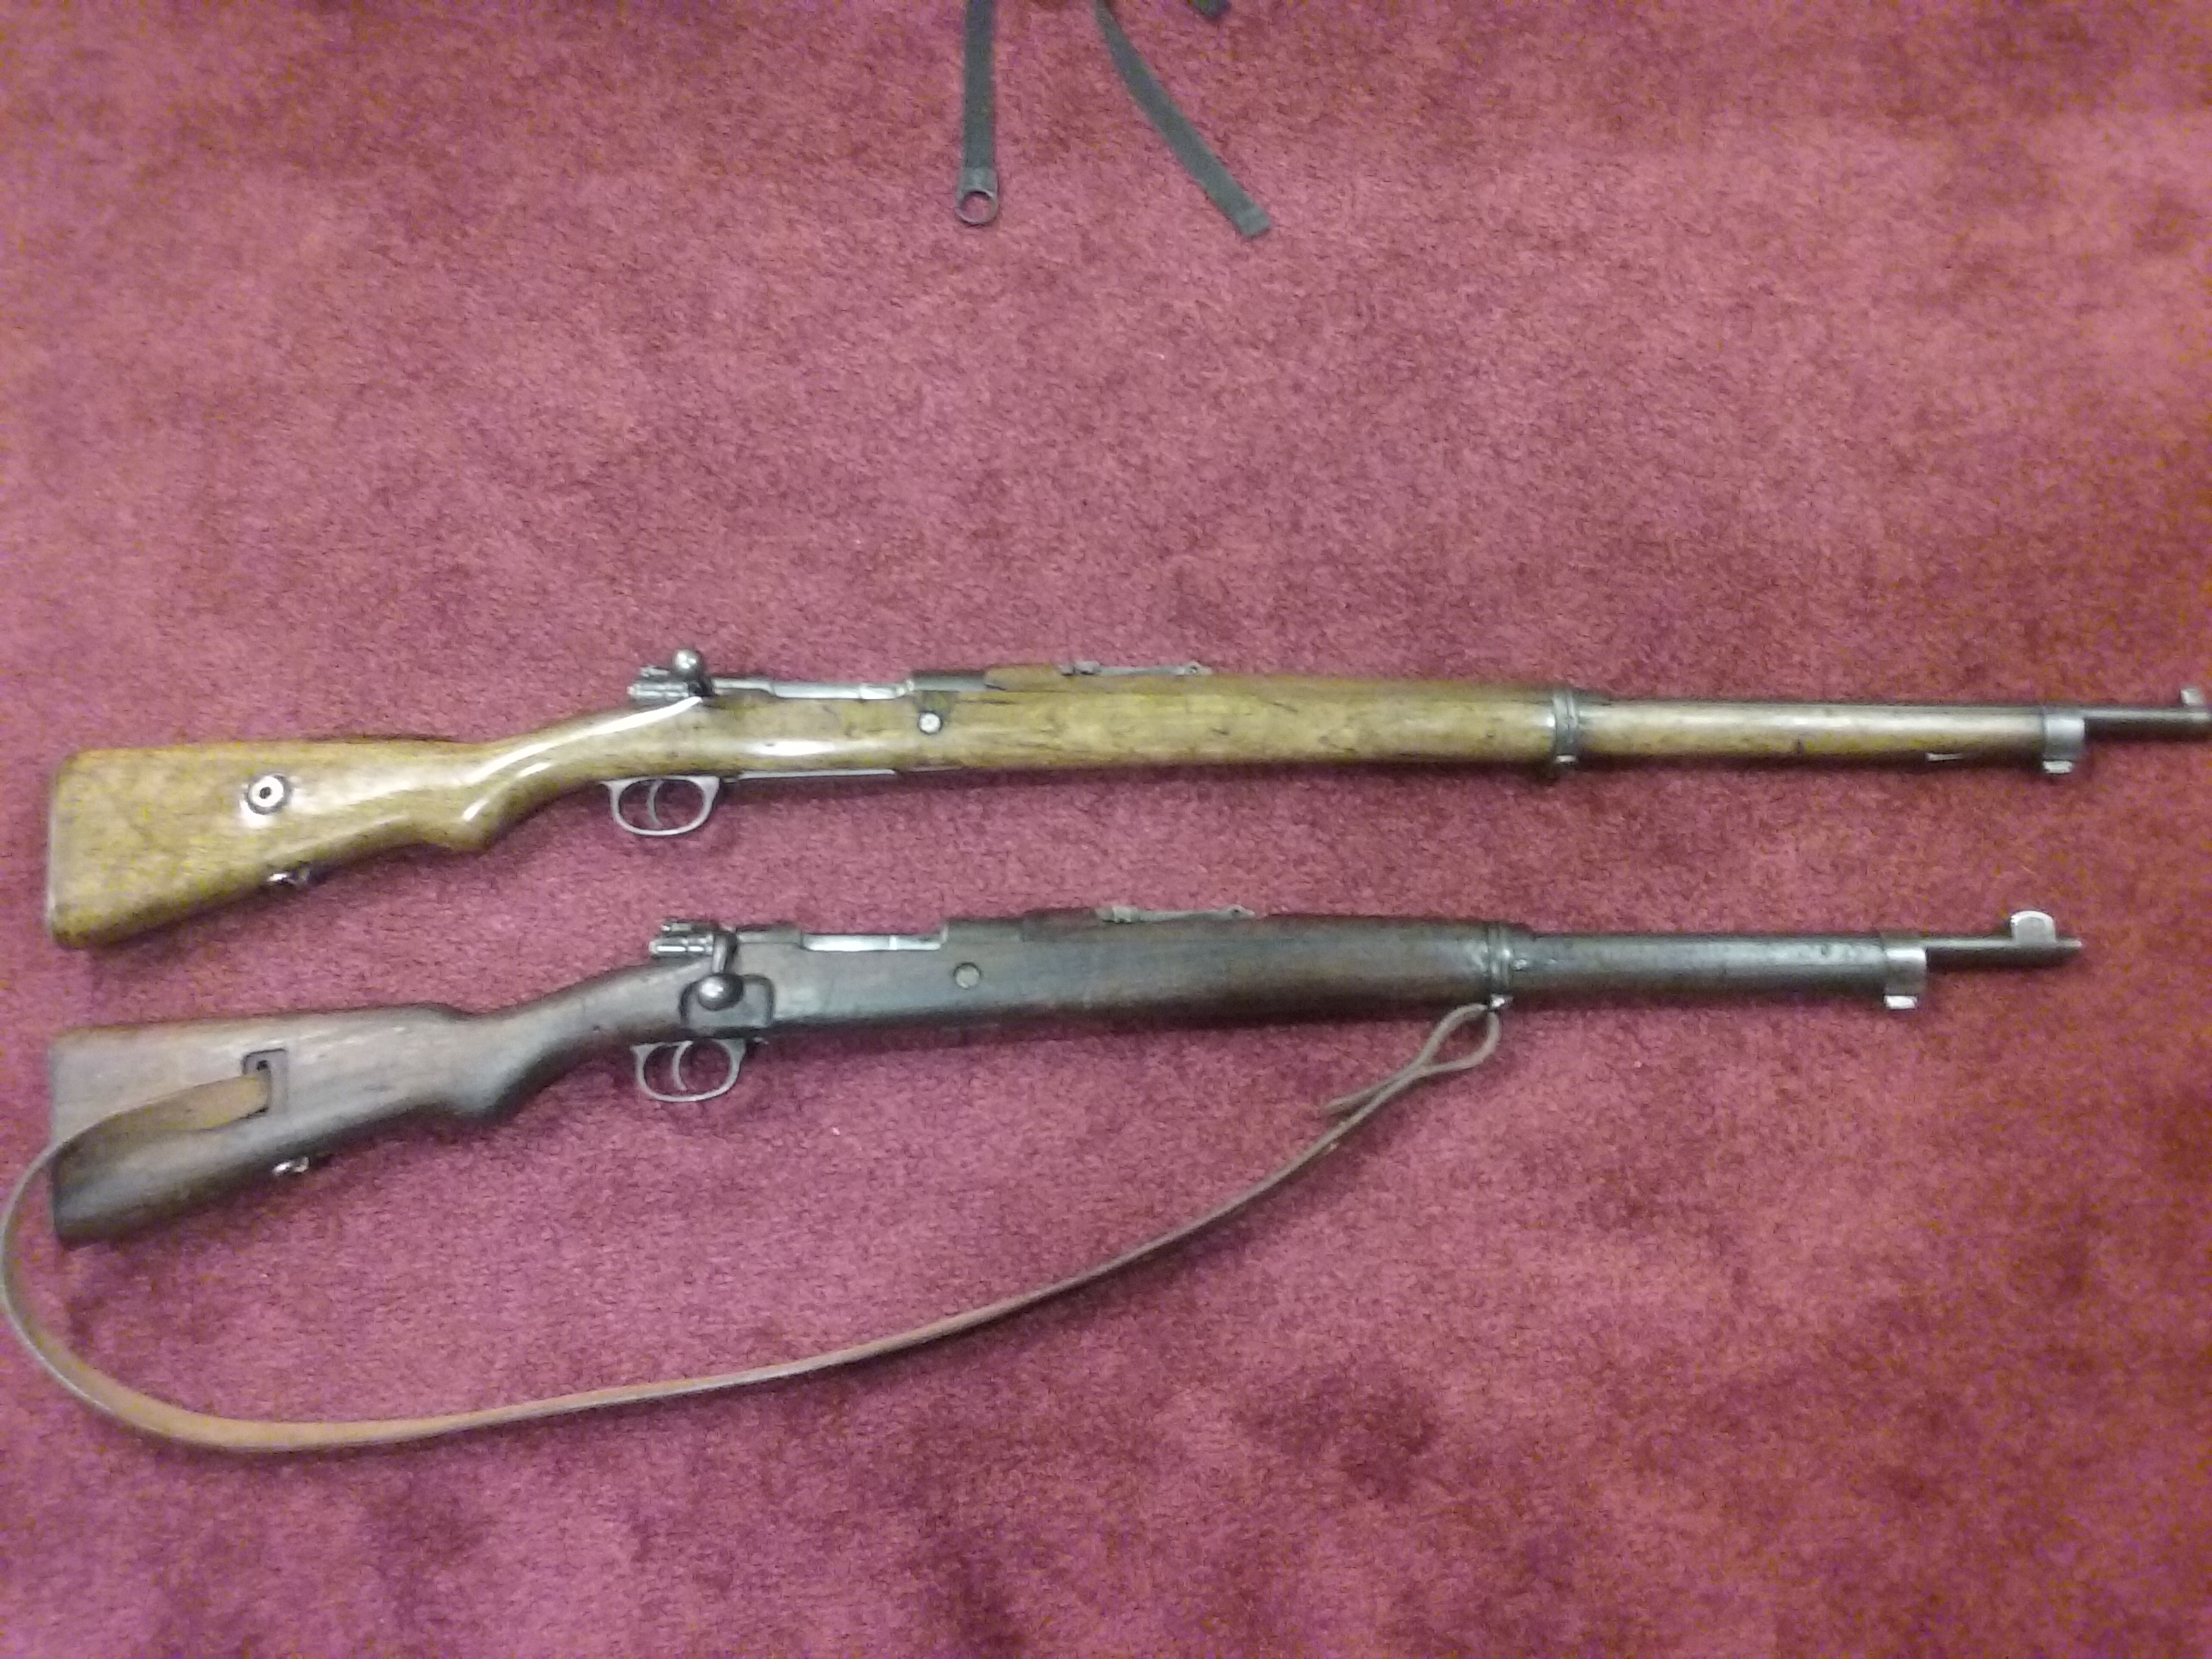 My two Turkish Mausers